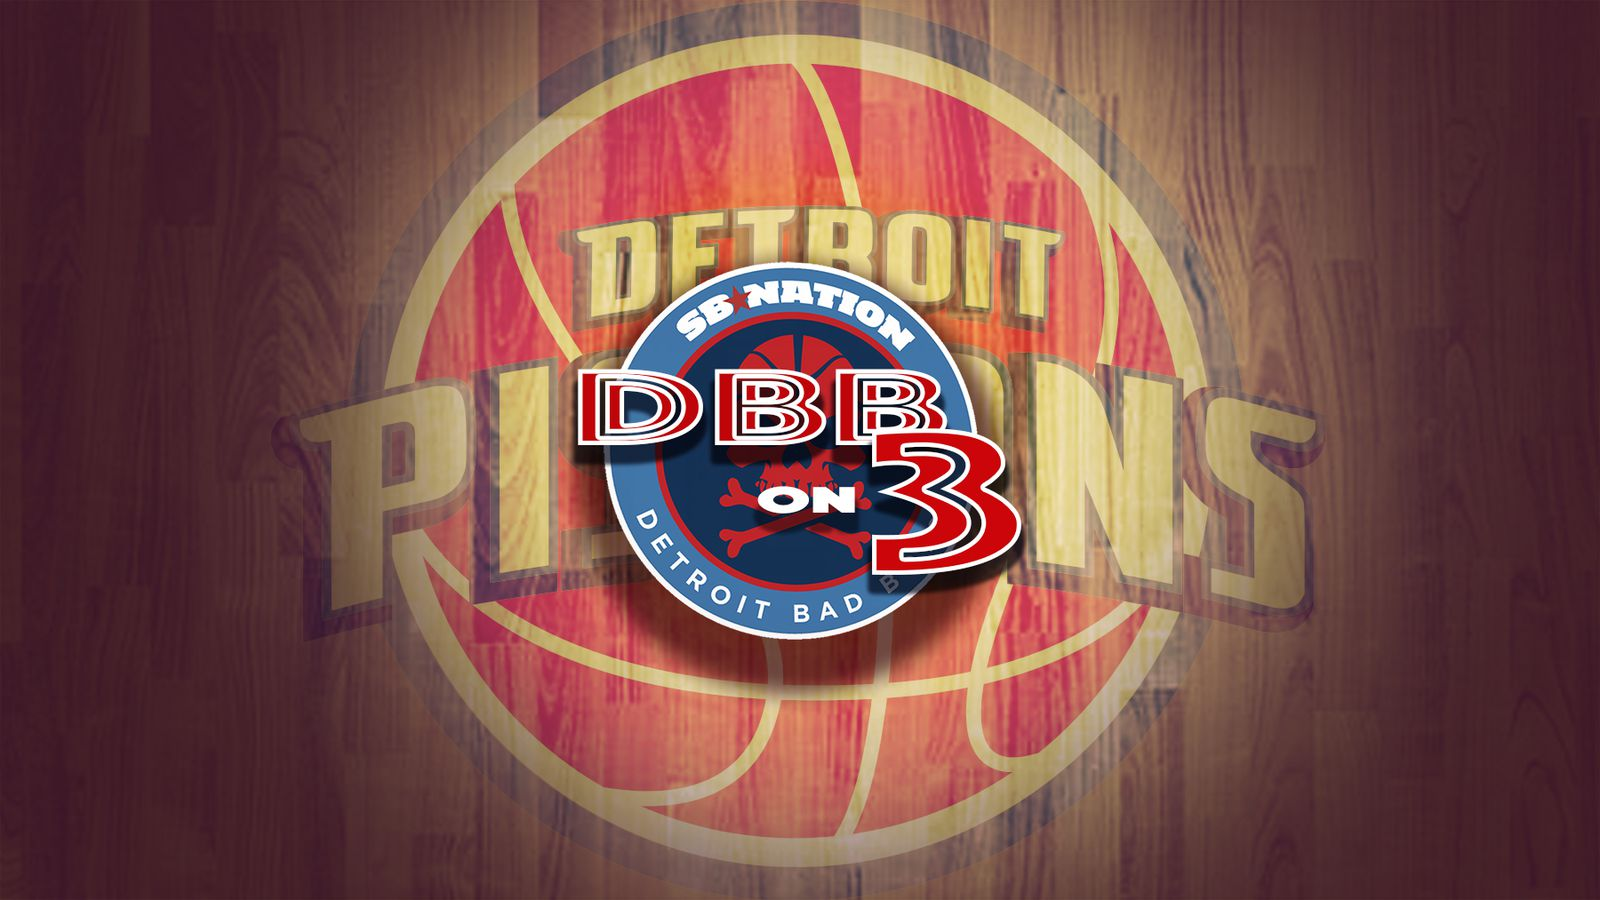 Dbb_on_3_predicting_the_pistons.0